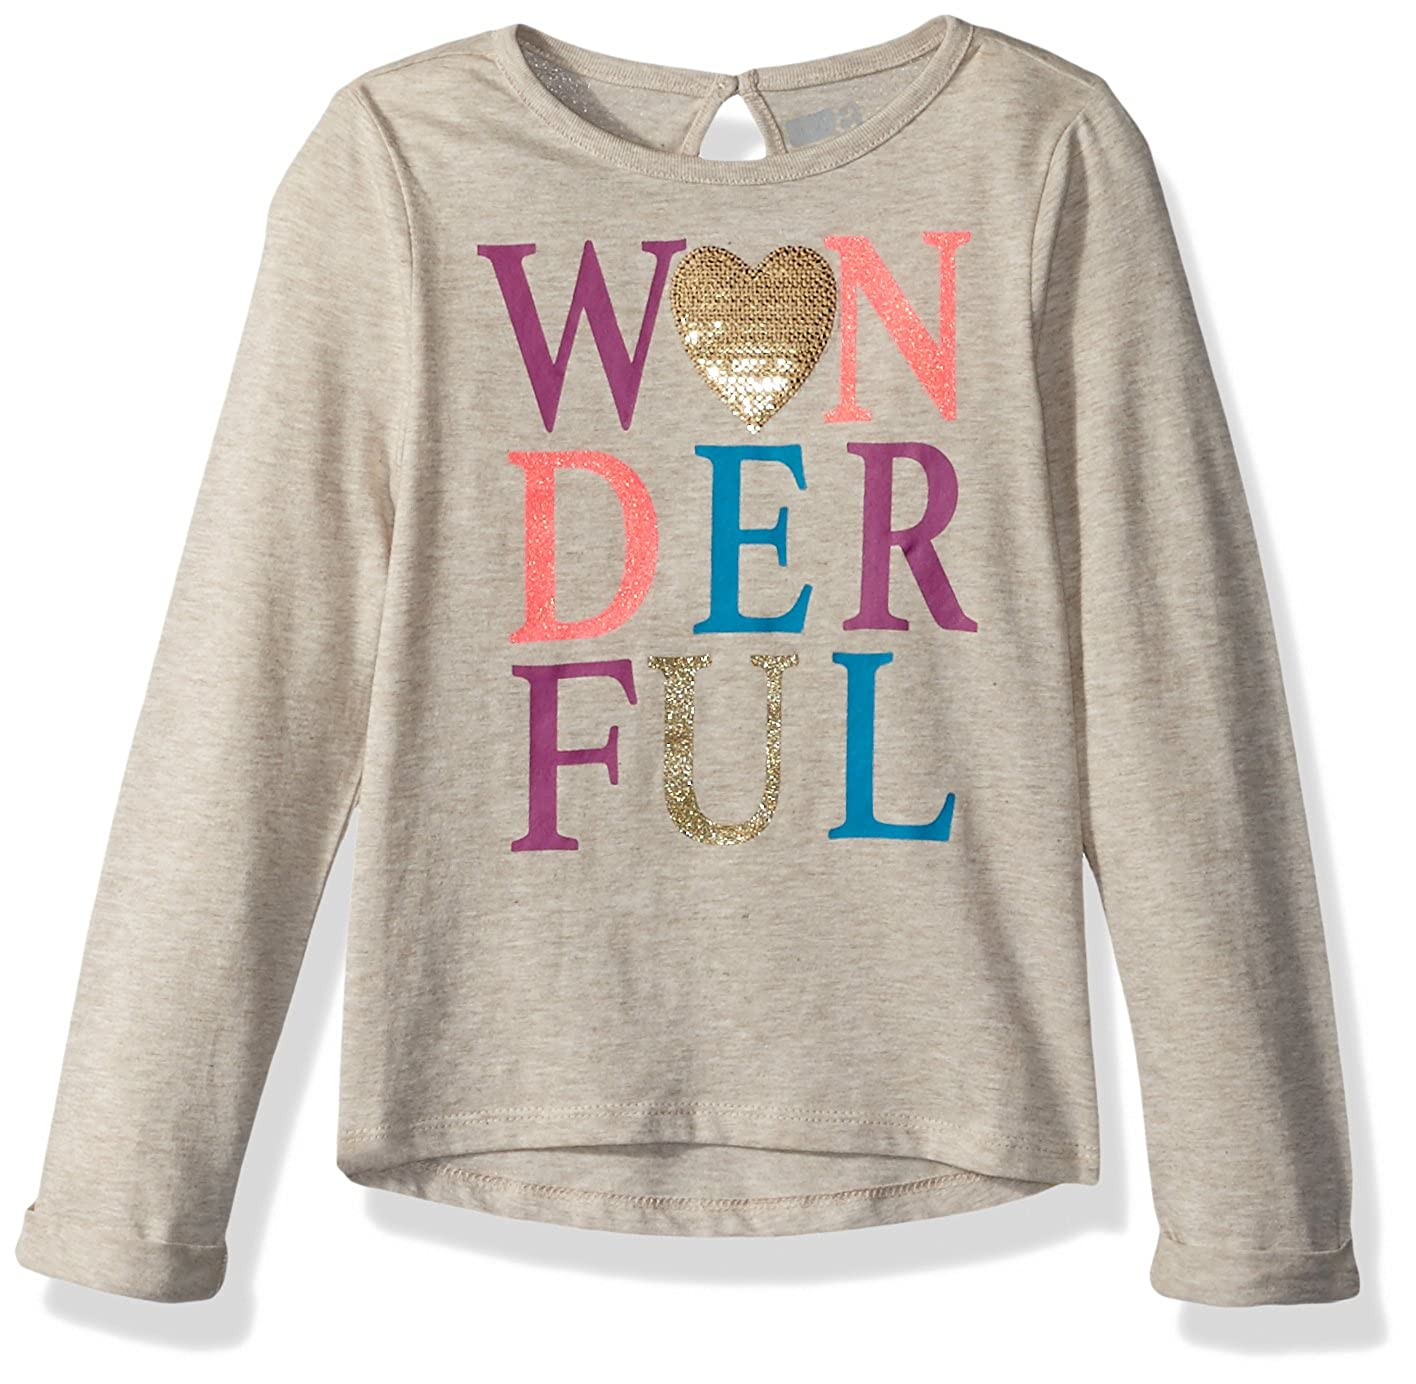 34505a132f79 Amazon.com: Crazy 8 Girls' Toddler Long Roll Sleeve Sparkle Graphic Tee:  Clothing